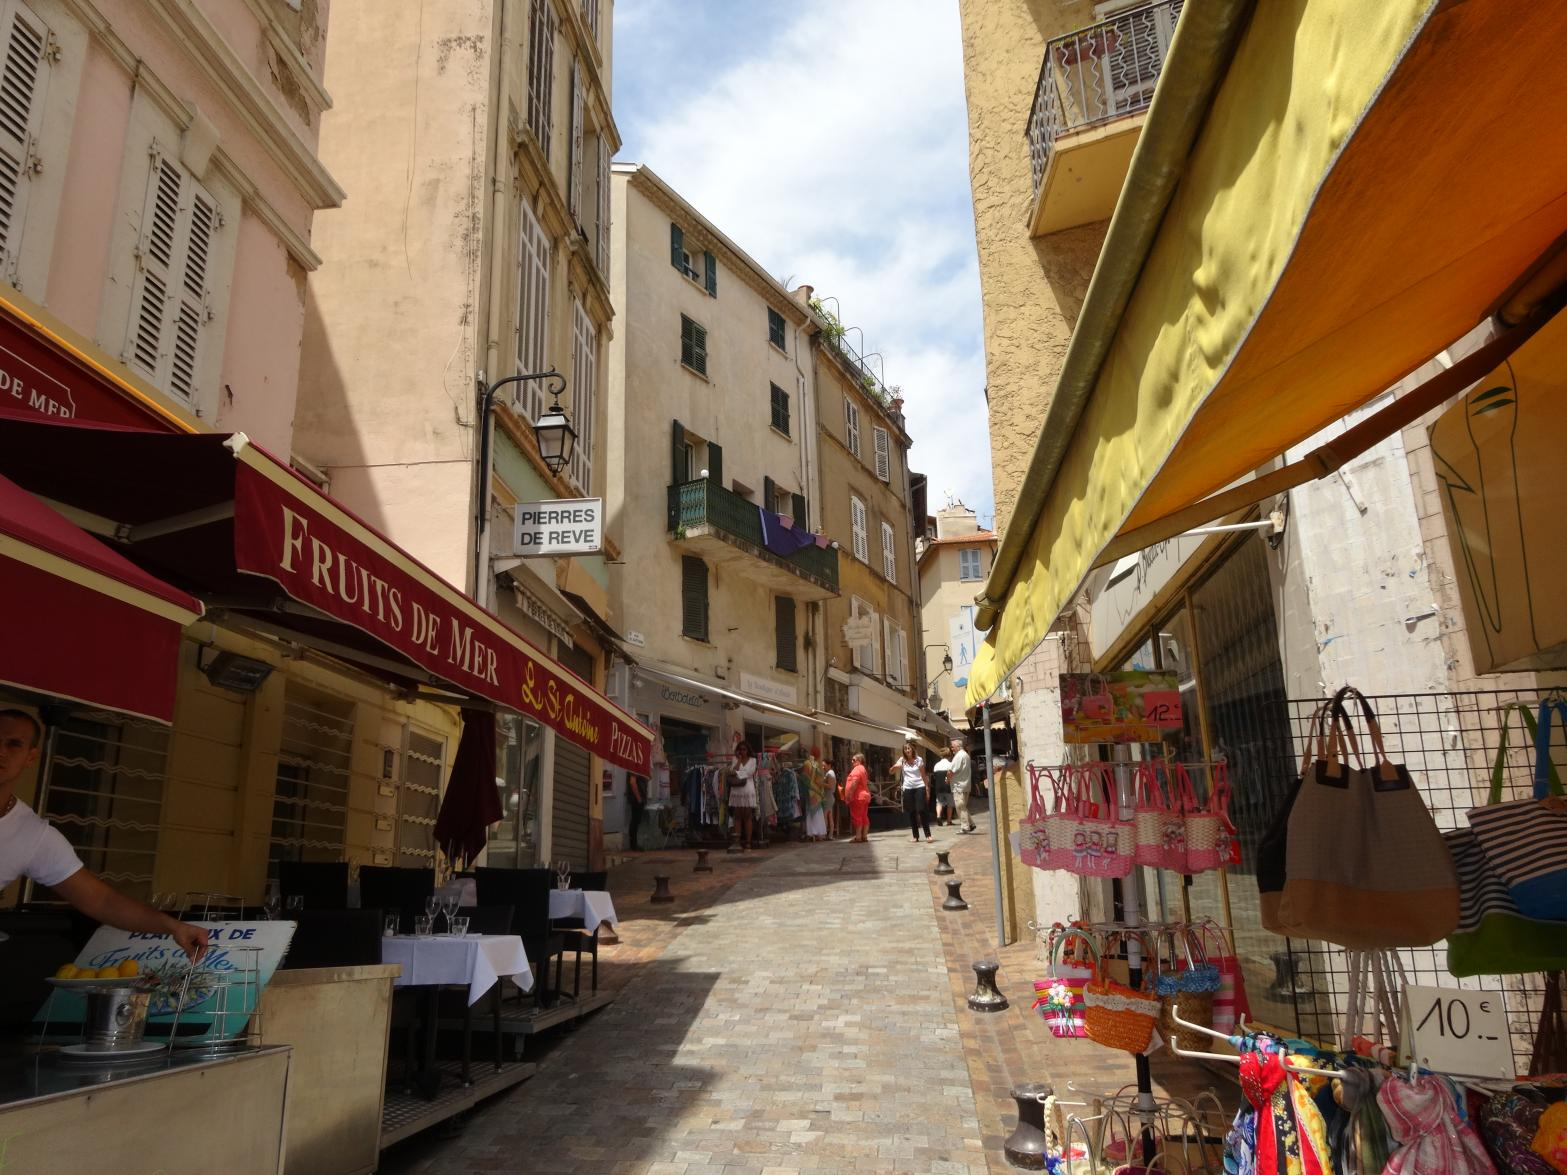 The apartment is located in the oldest part of Cannes called ''Le Suquet''